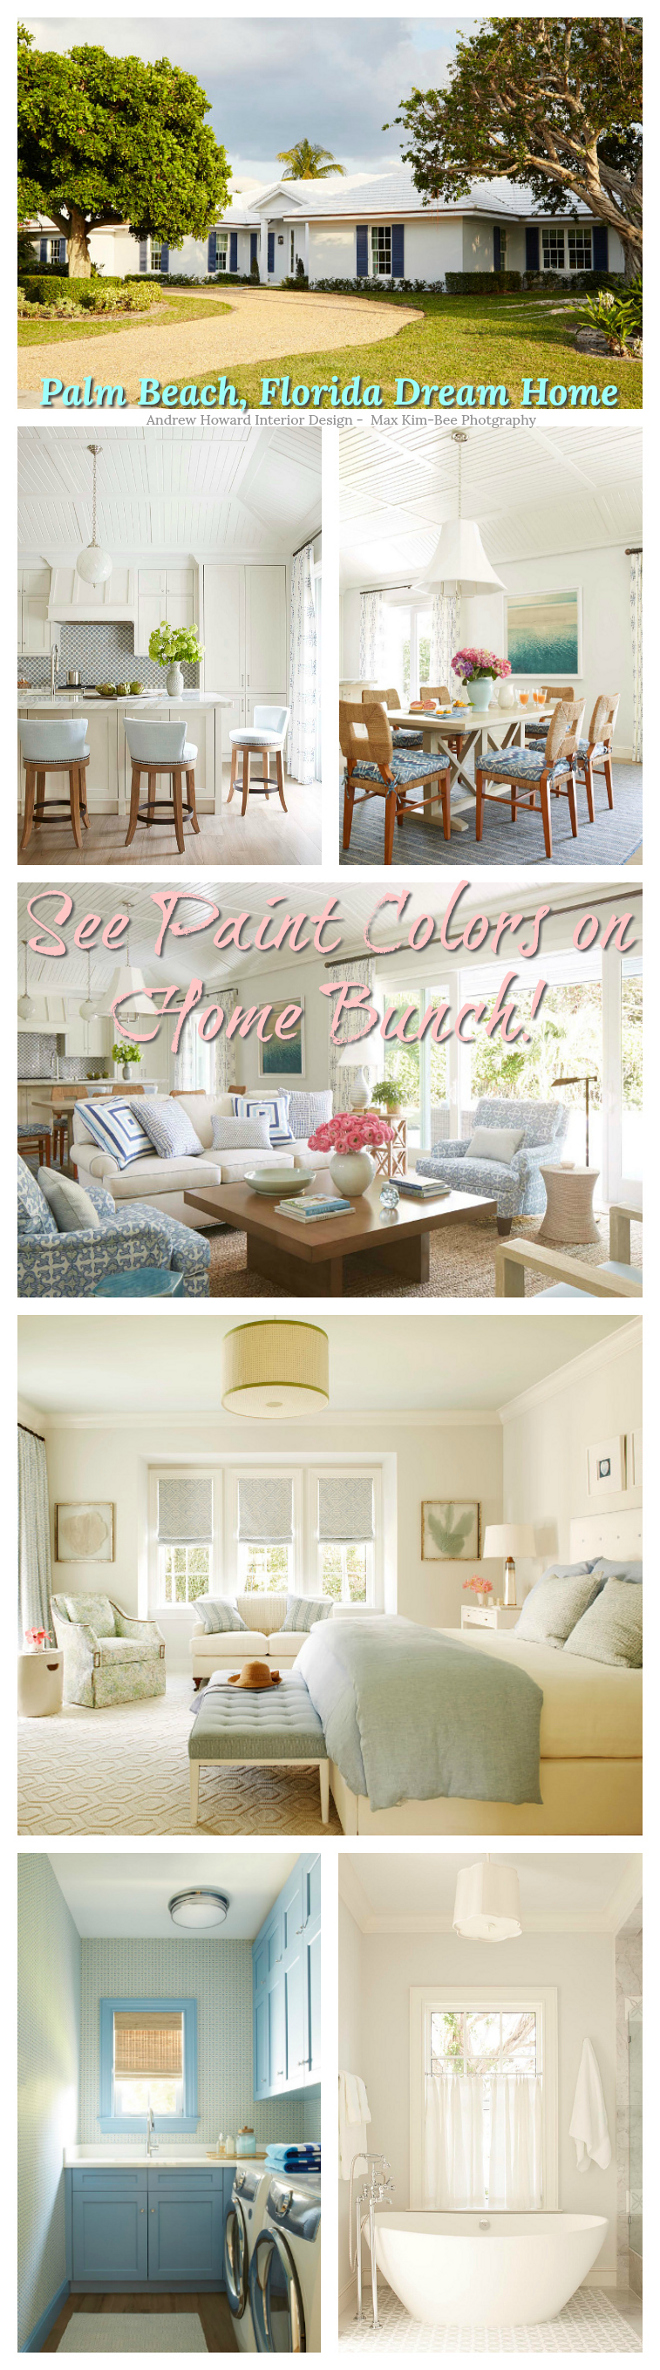 White Sage Paint The Best Benjamin Moore Paint Colors Home Bunch Interior Design